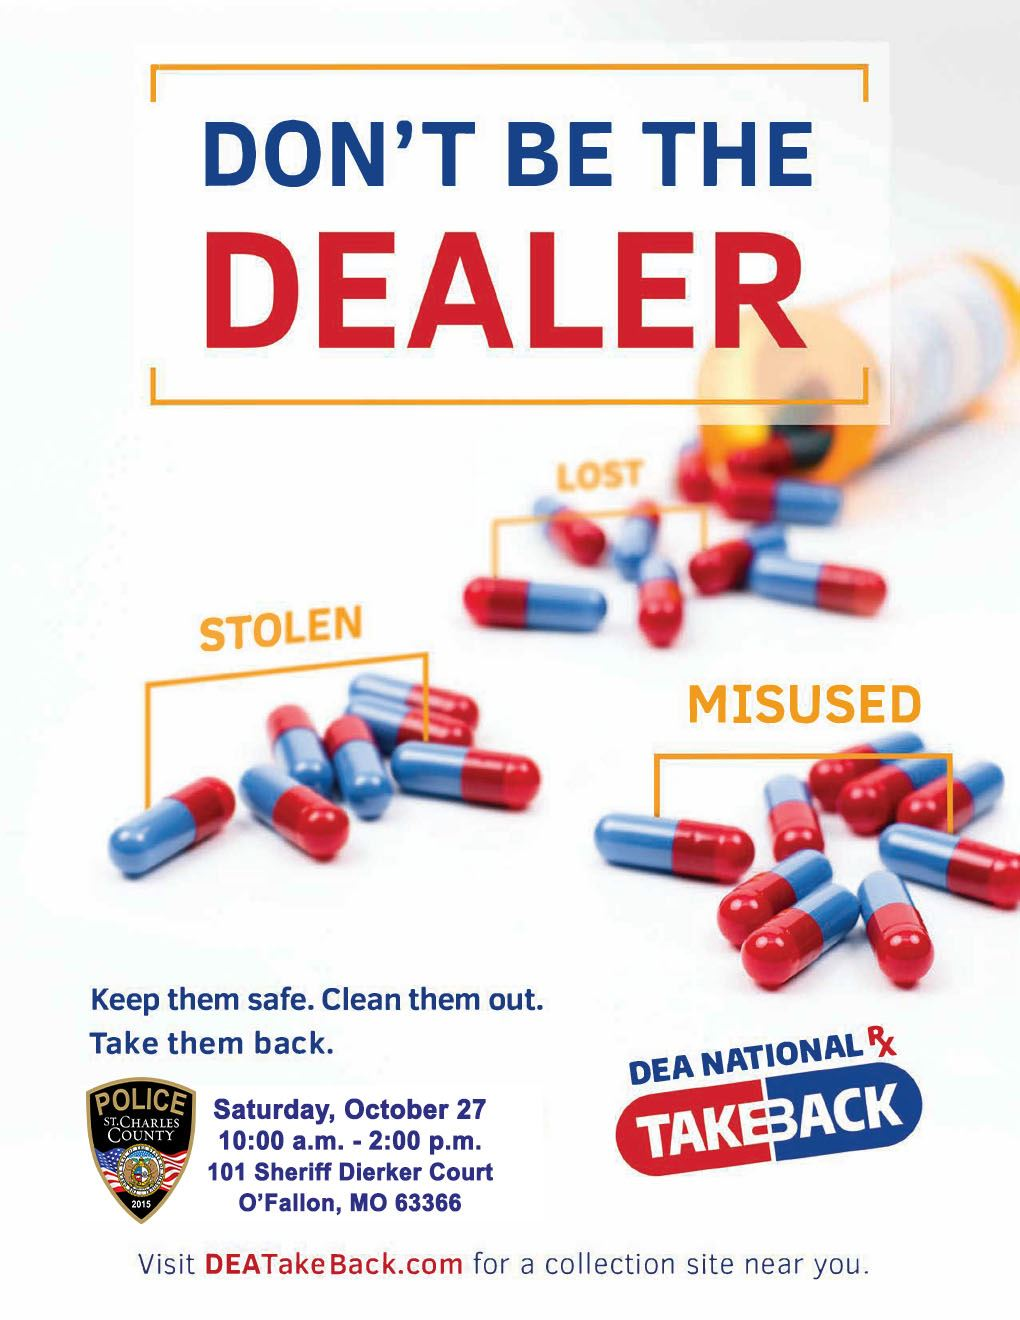 DEA_TakeBack2018_Poster_8.5x11_Eng_508_October2018